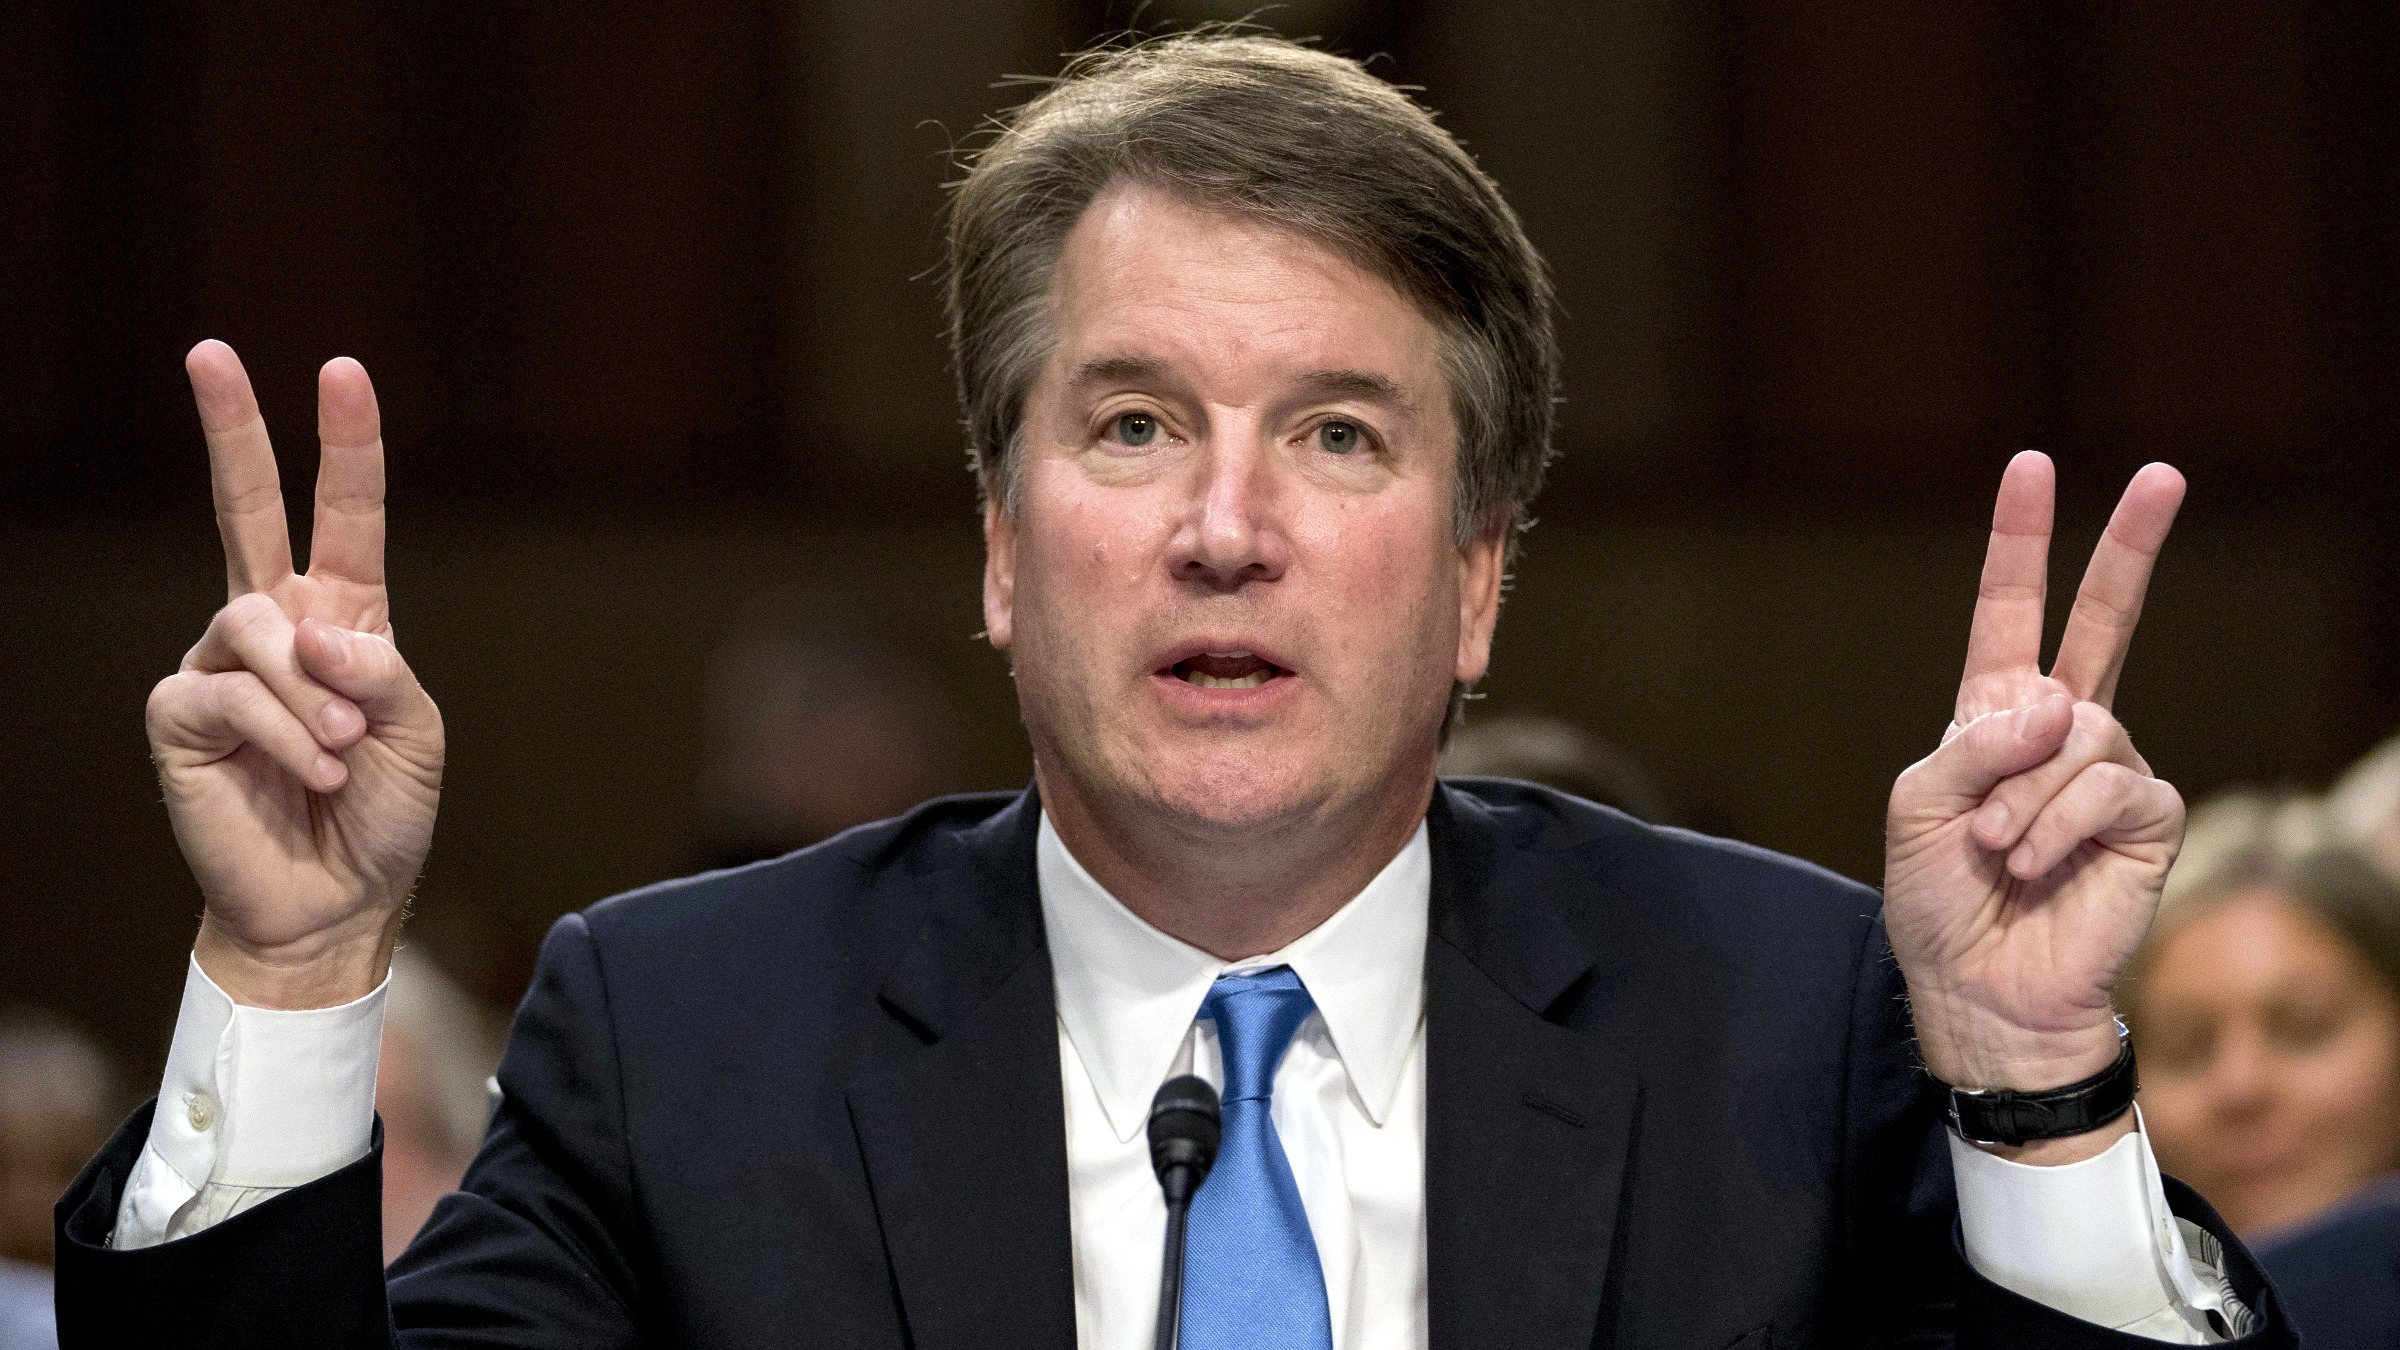 President Donald Trump's Supreme Court nominee, Brett Kavanaugh testifies before the Senate Judiciary Committee on Capitol Hill in Washington, Wednesday, Sept. 5, 2018, for the second day of his confirmation to replace retired Justice Anthony Kennedy.